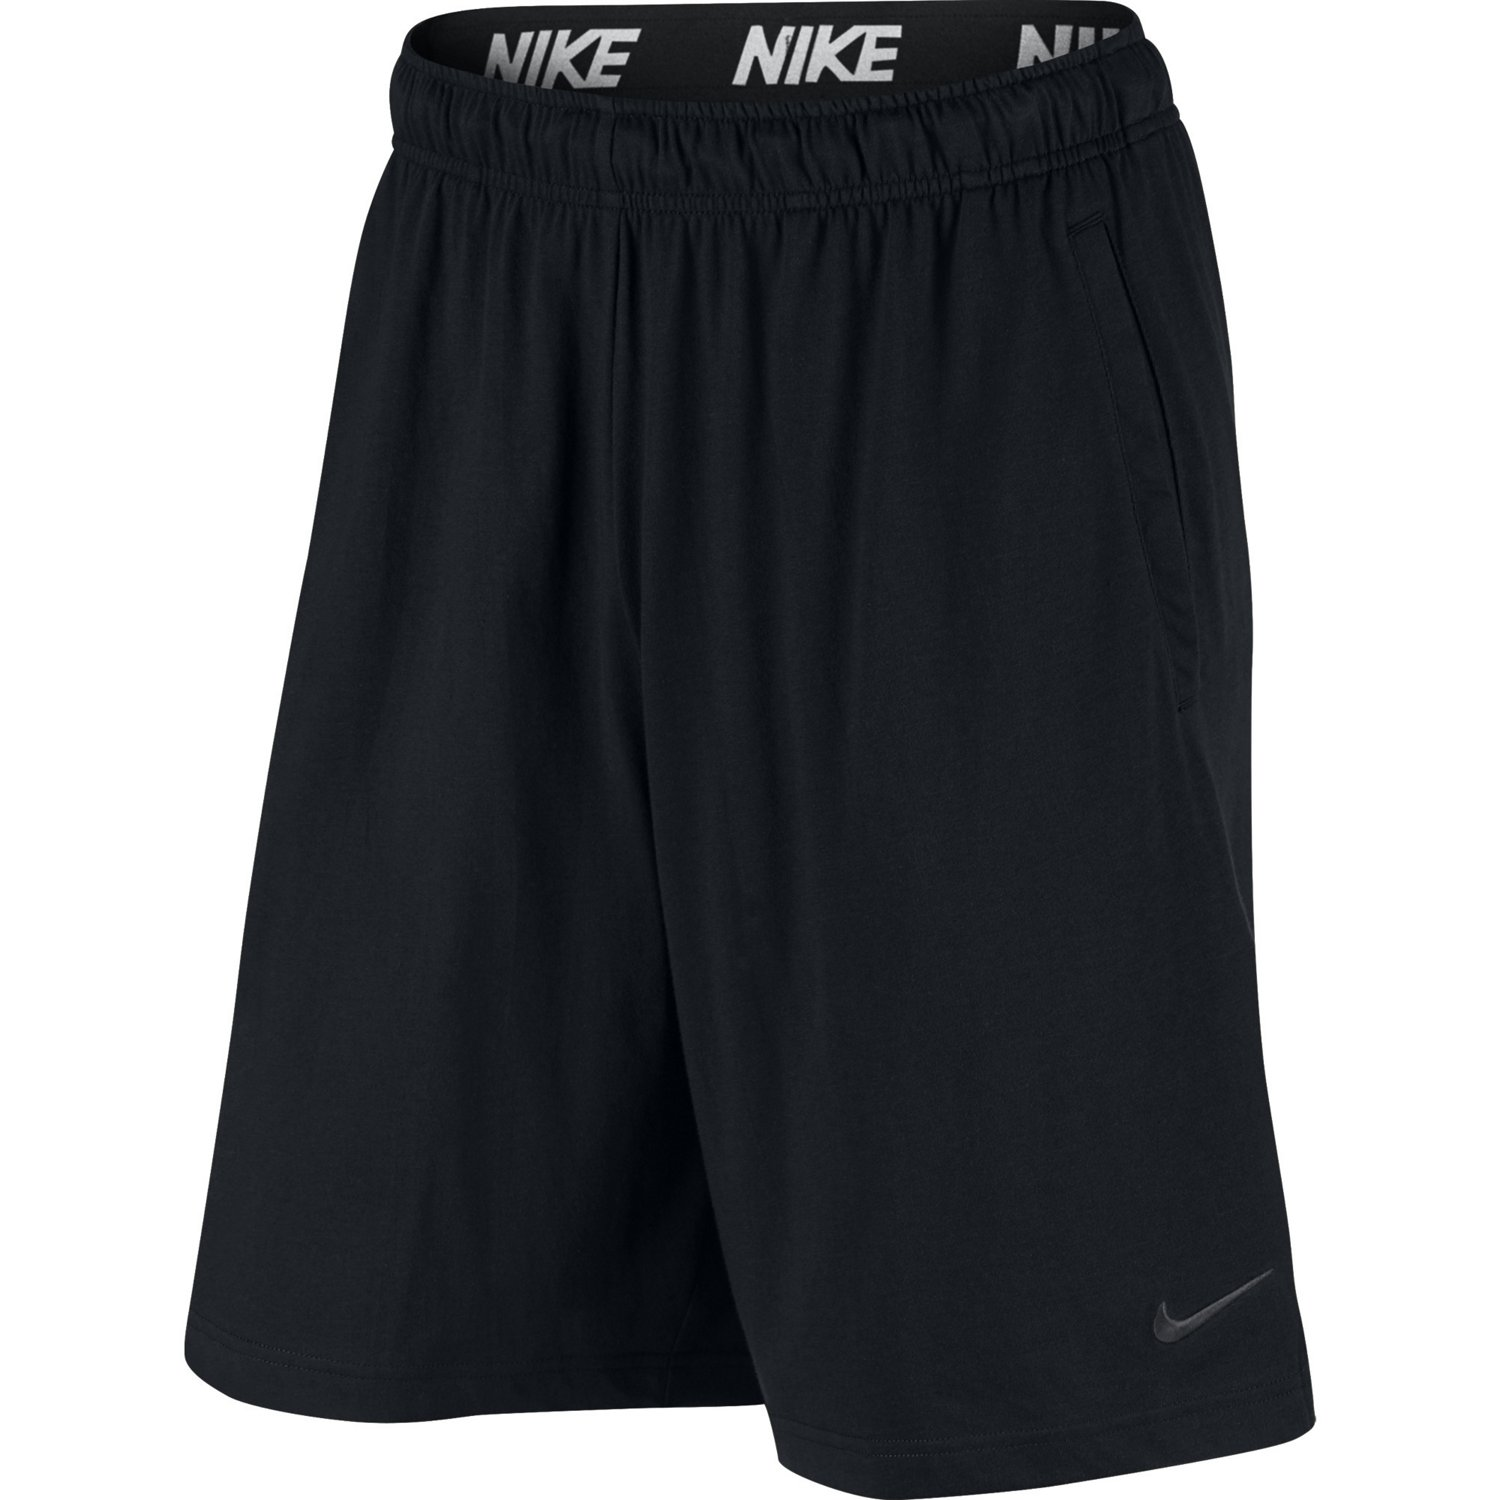 81e93abd6d44 Display product reviews for Nike Men s Training Short